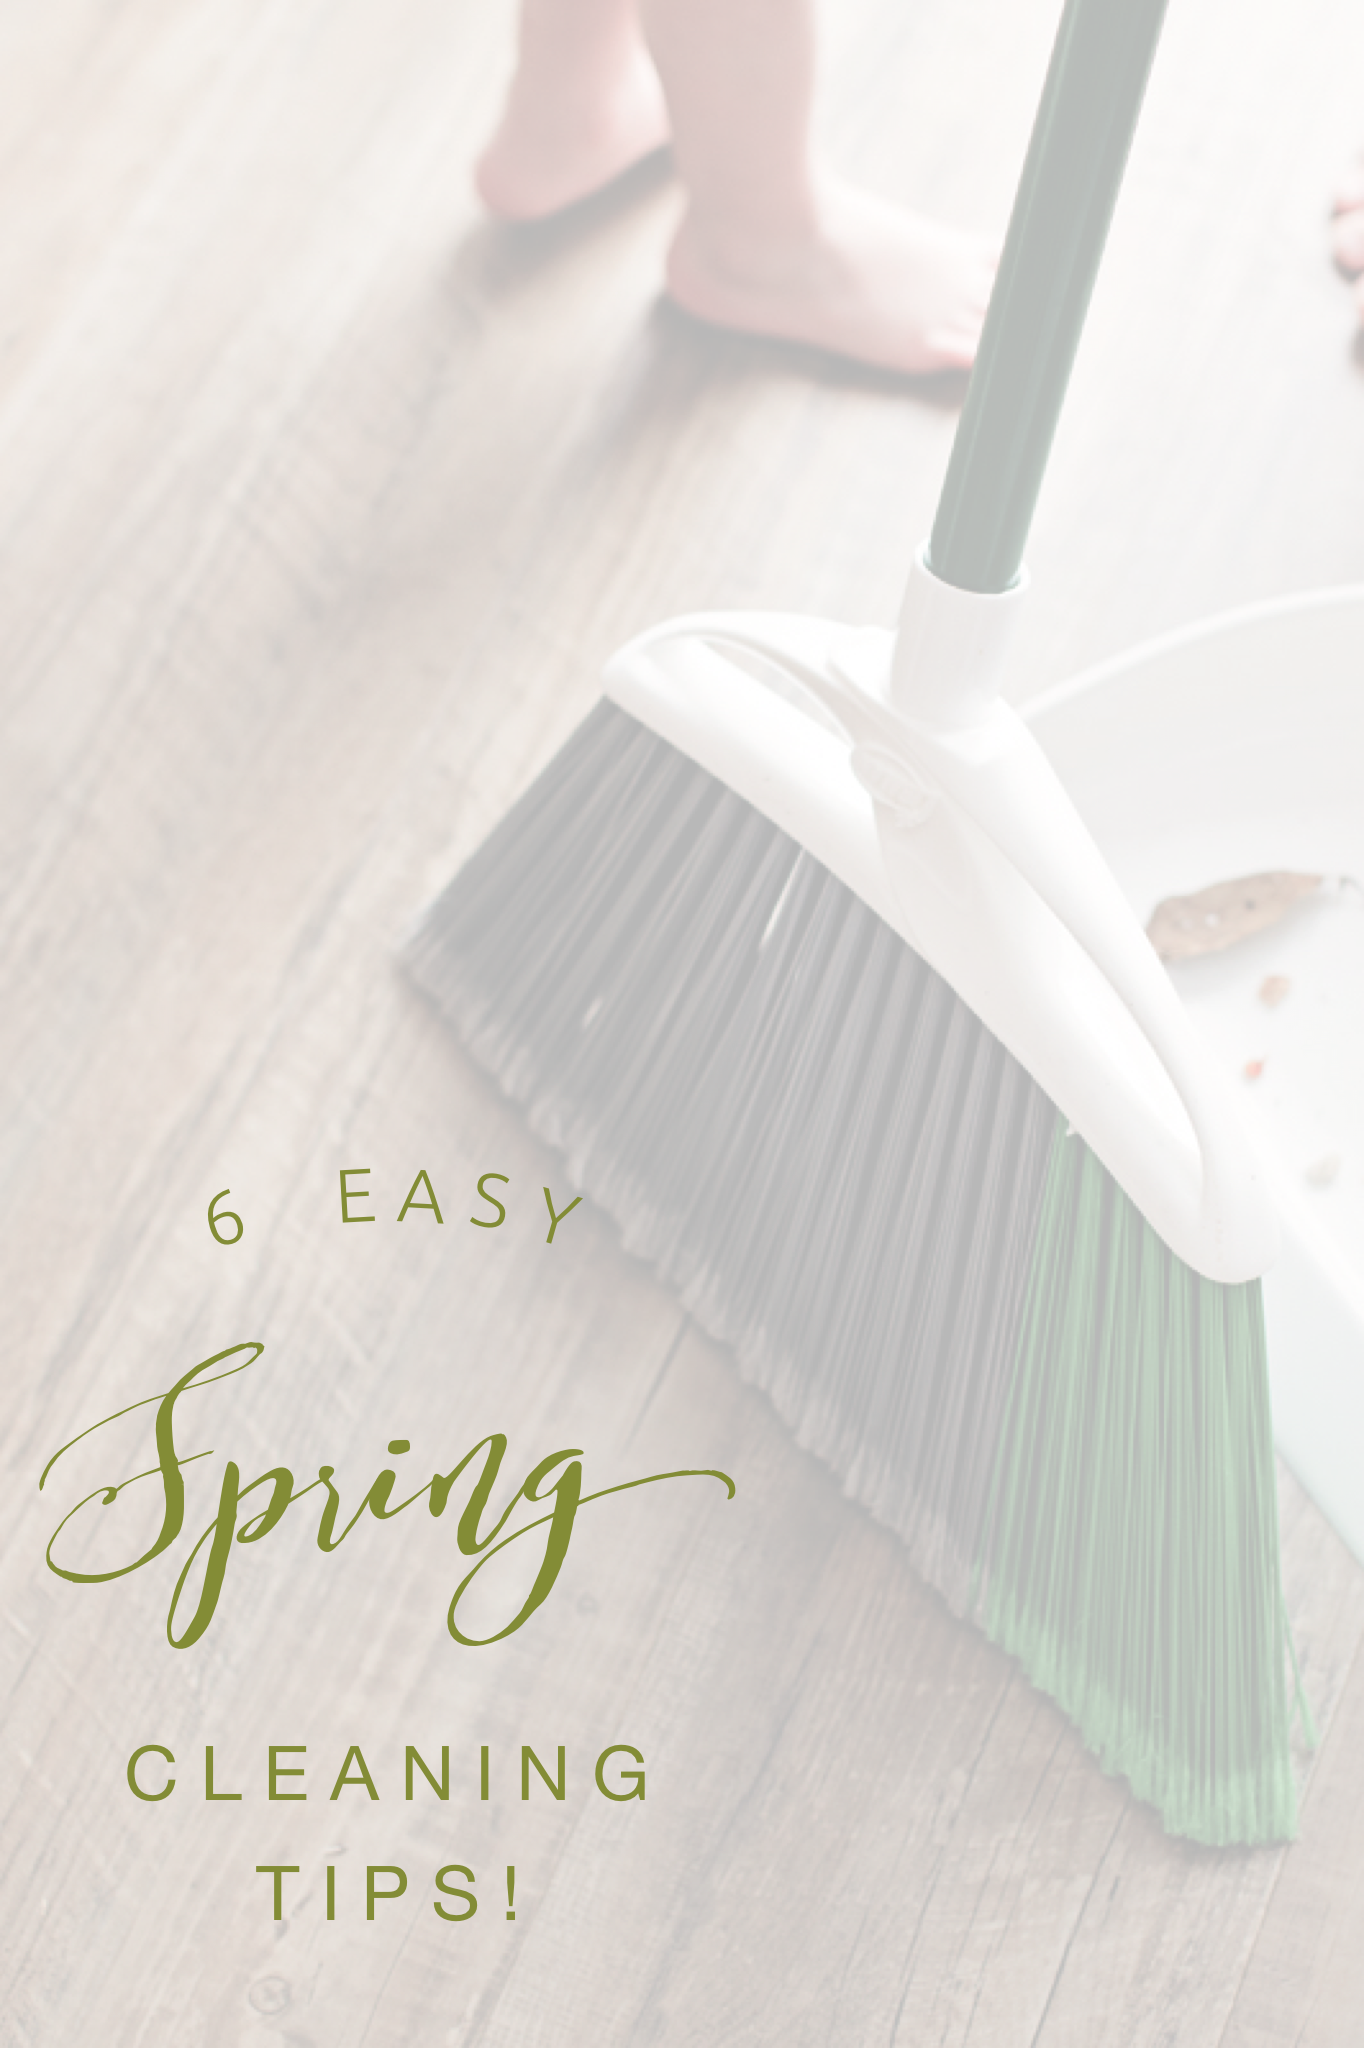 Easy Cleaning Tips With Libman Spring Cleaning@